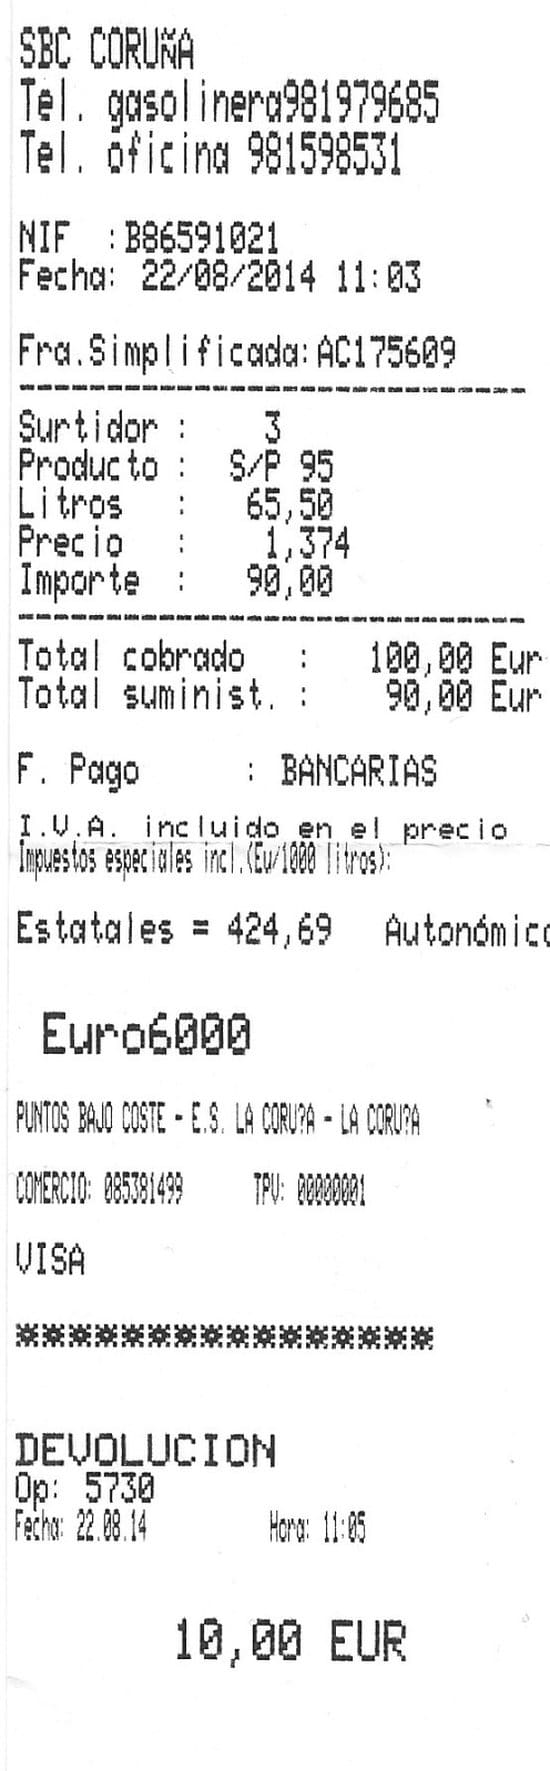 Ticket de Gasolinera Low Cost